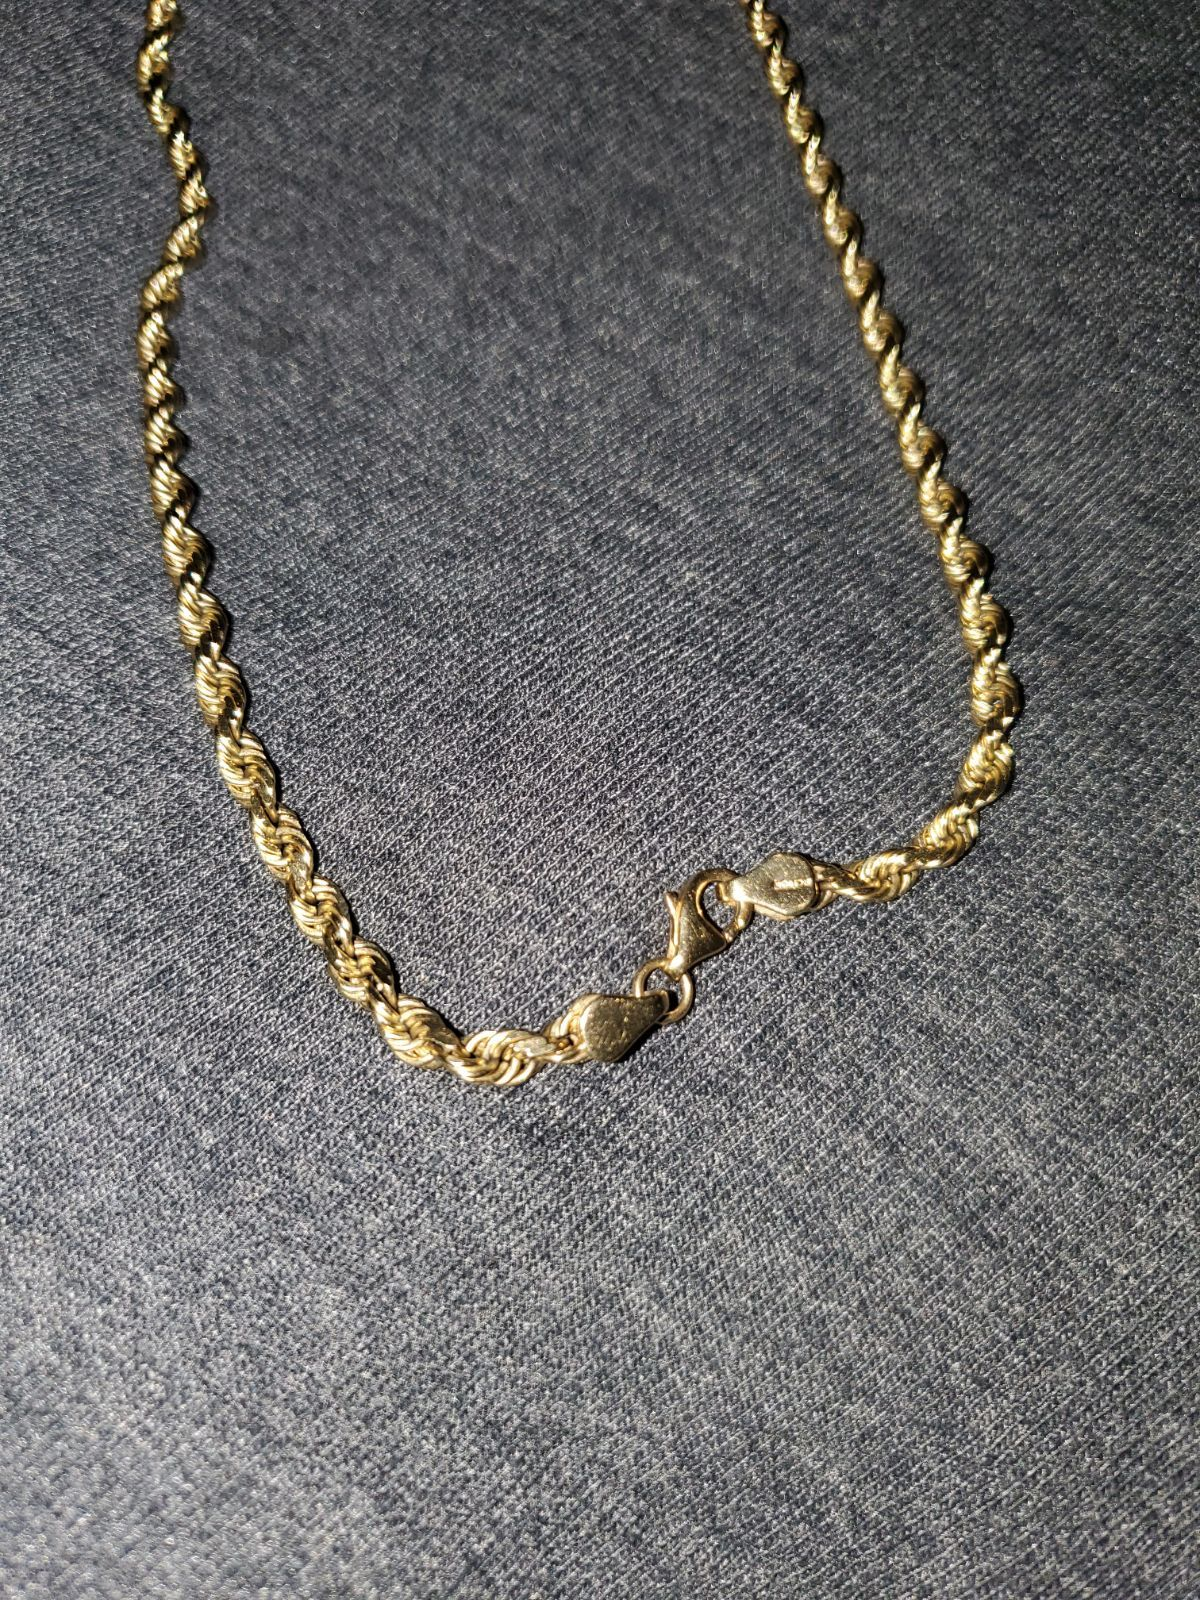 Im Selling A 10k Rope Chain It Weights 27 2gms Its 22 Long It S A Real Gold Chain Real Gold Chains Kay Jewelers Necklaces Gold Rope Chains